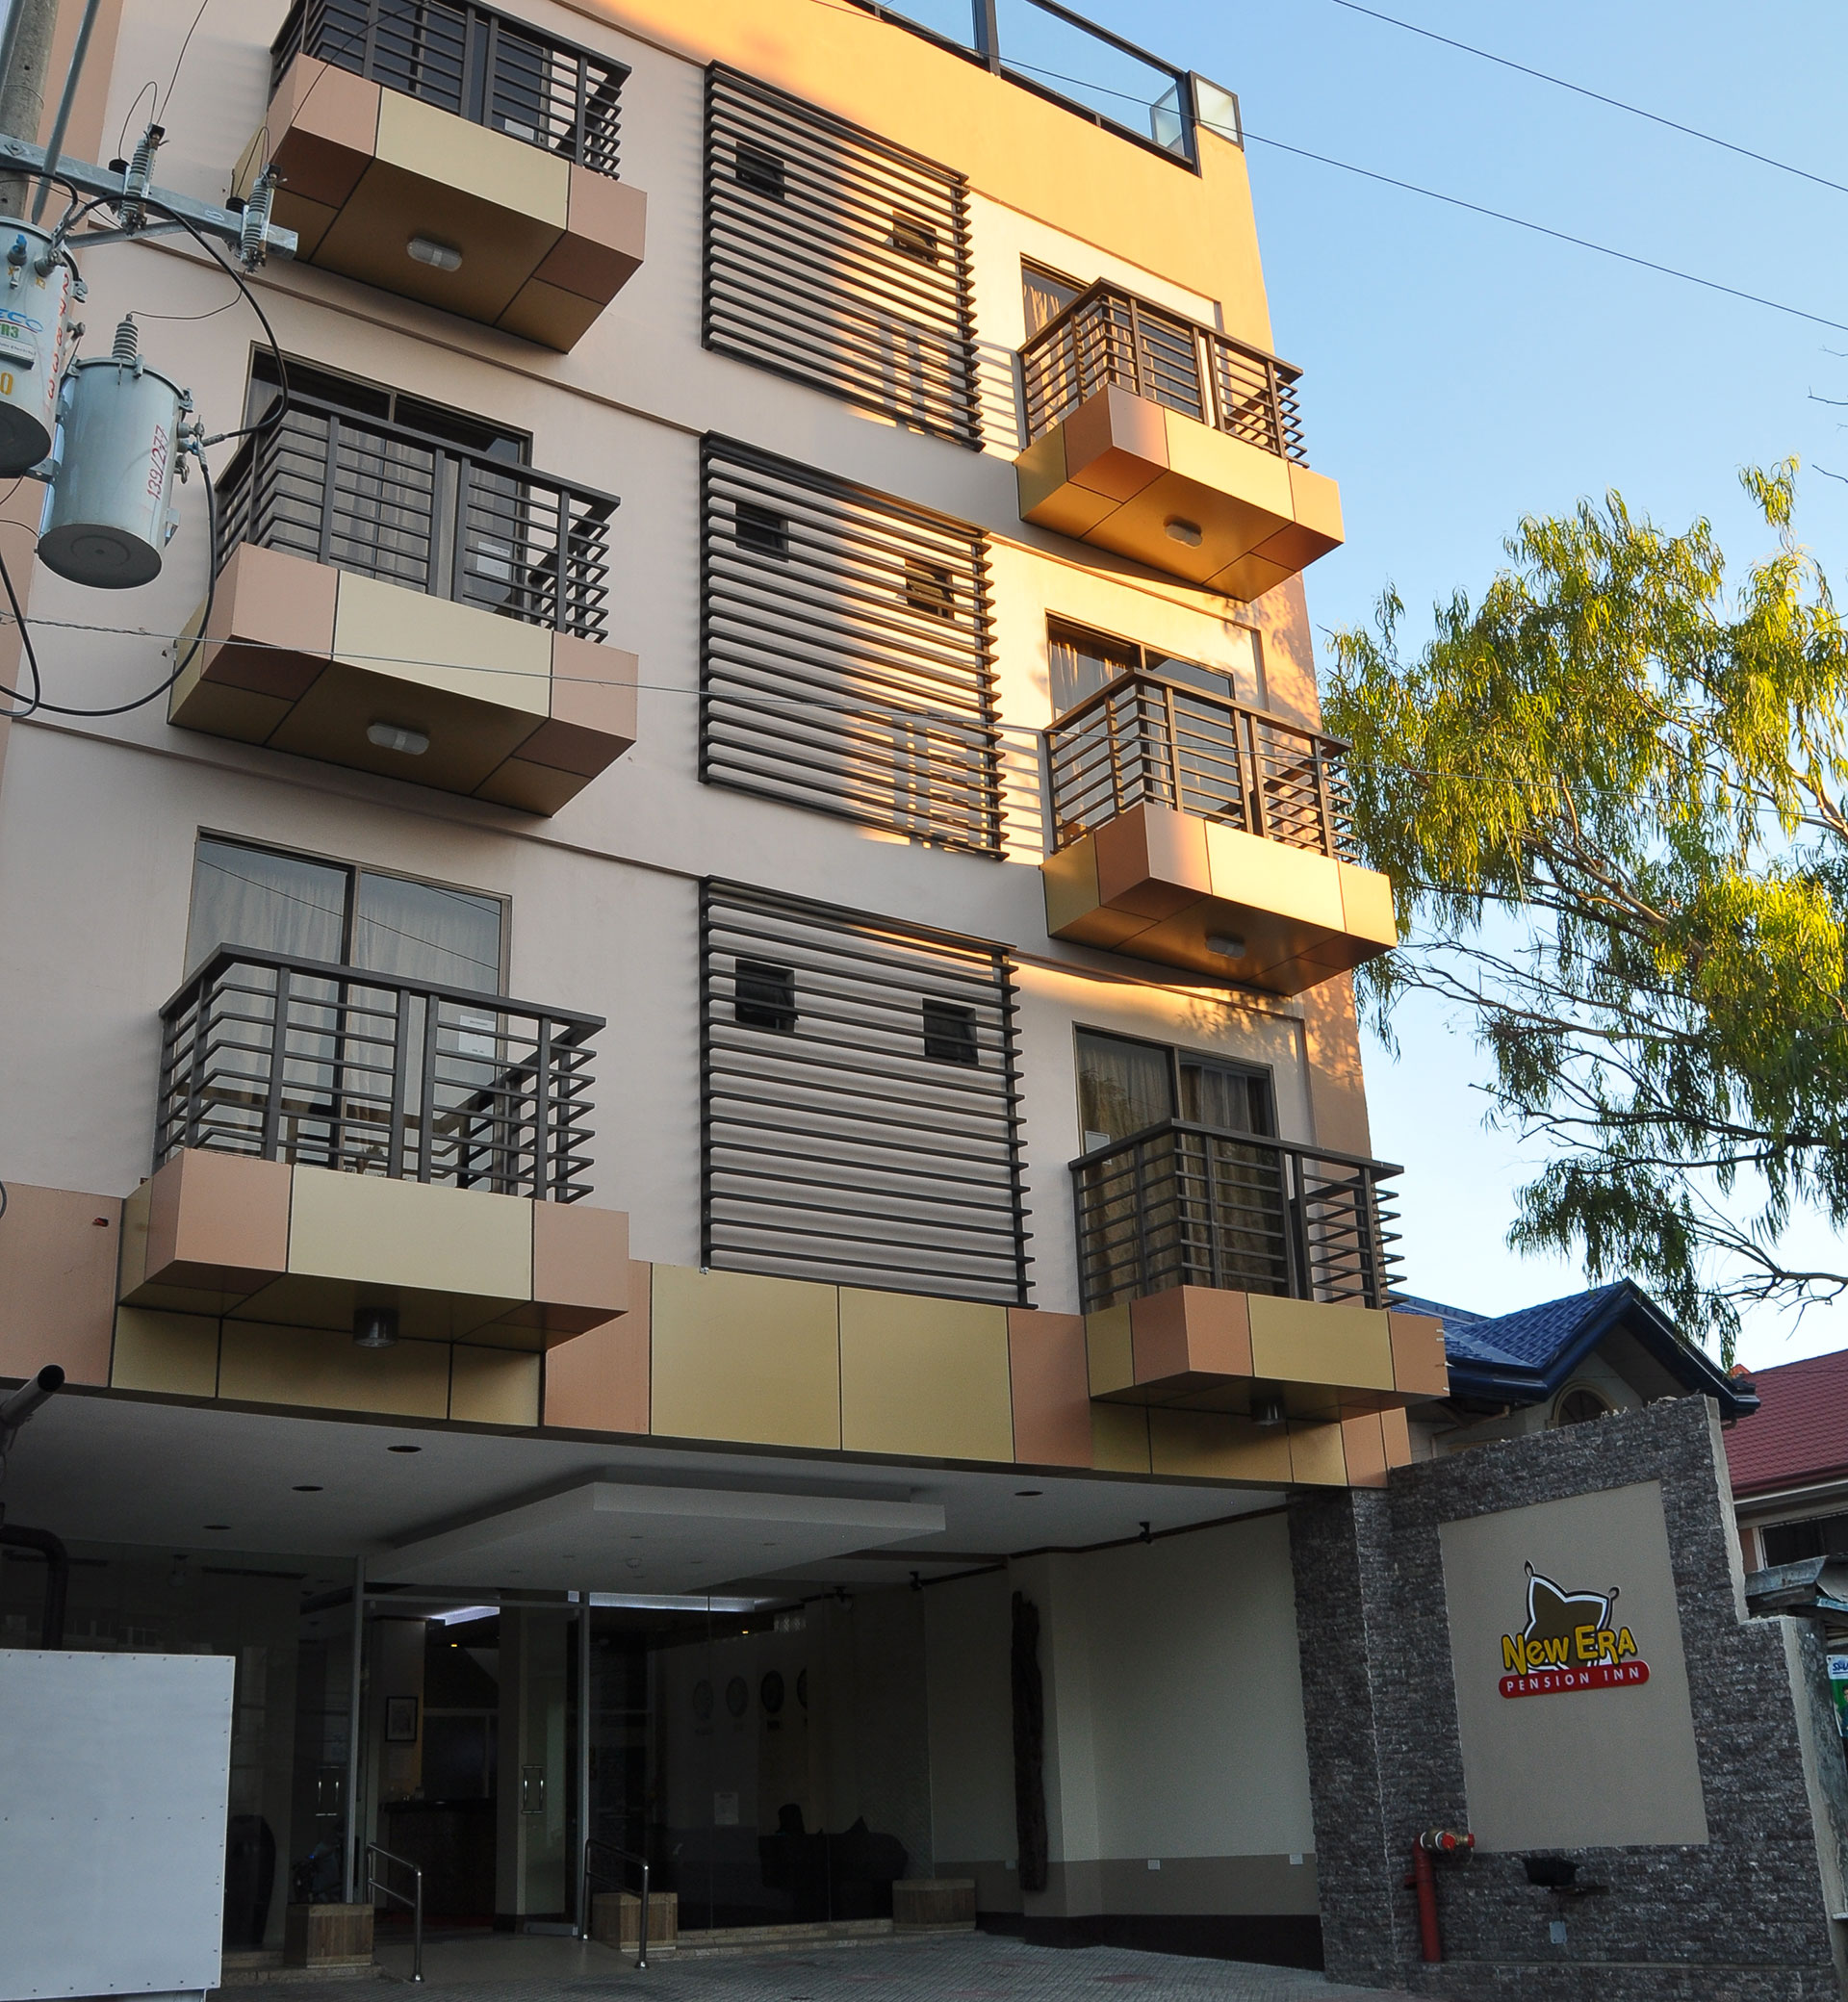 Cheap Hotels In Cebu City